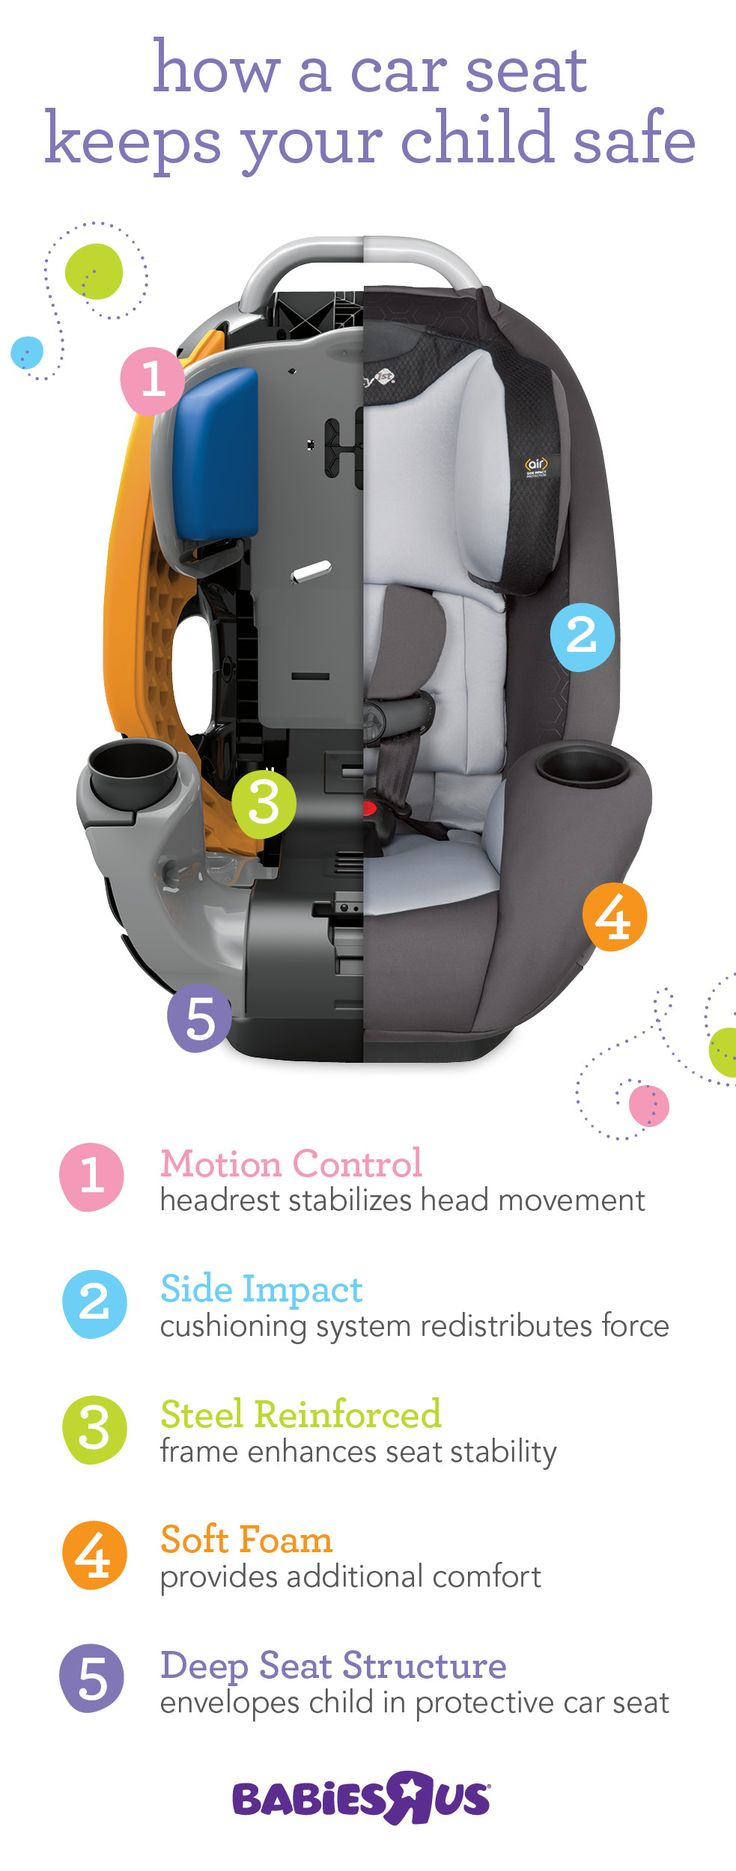 With so many car seats out there, how do you know which ones are best? Look for the 5 features we've noted here, plus check out our car seat finder (Babiesrus.com/carseatfinder) to see which car seats got rave reviews. And you can always drop into one of stores for help from one of our gear experts who'll steer you in the right direction!